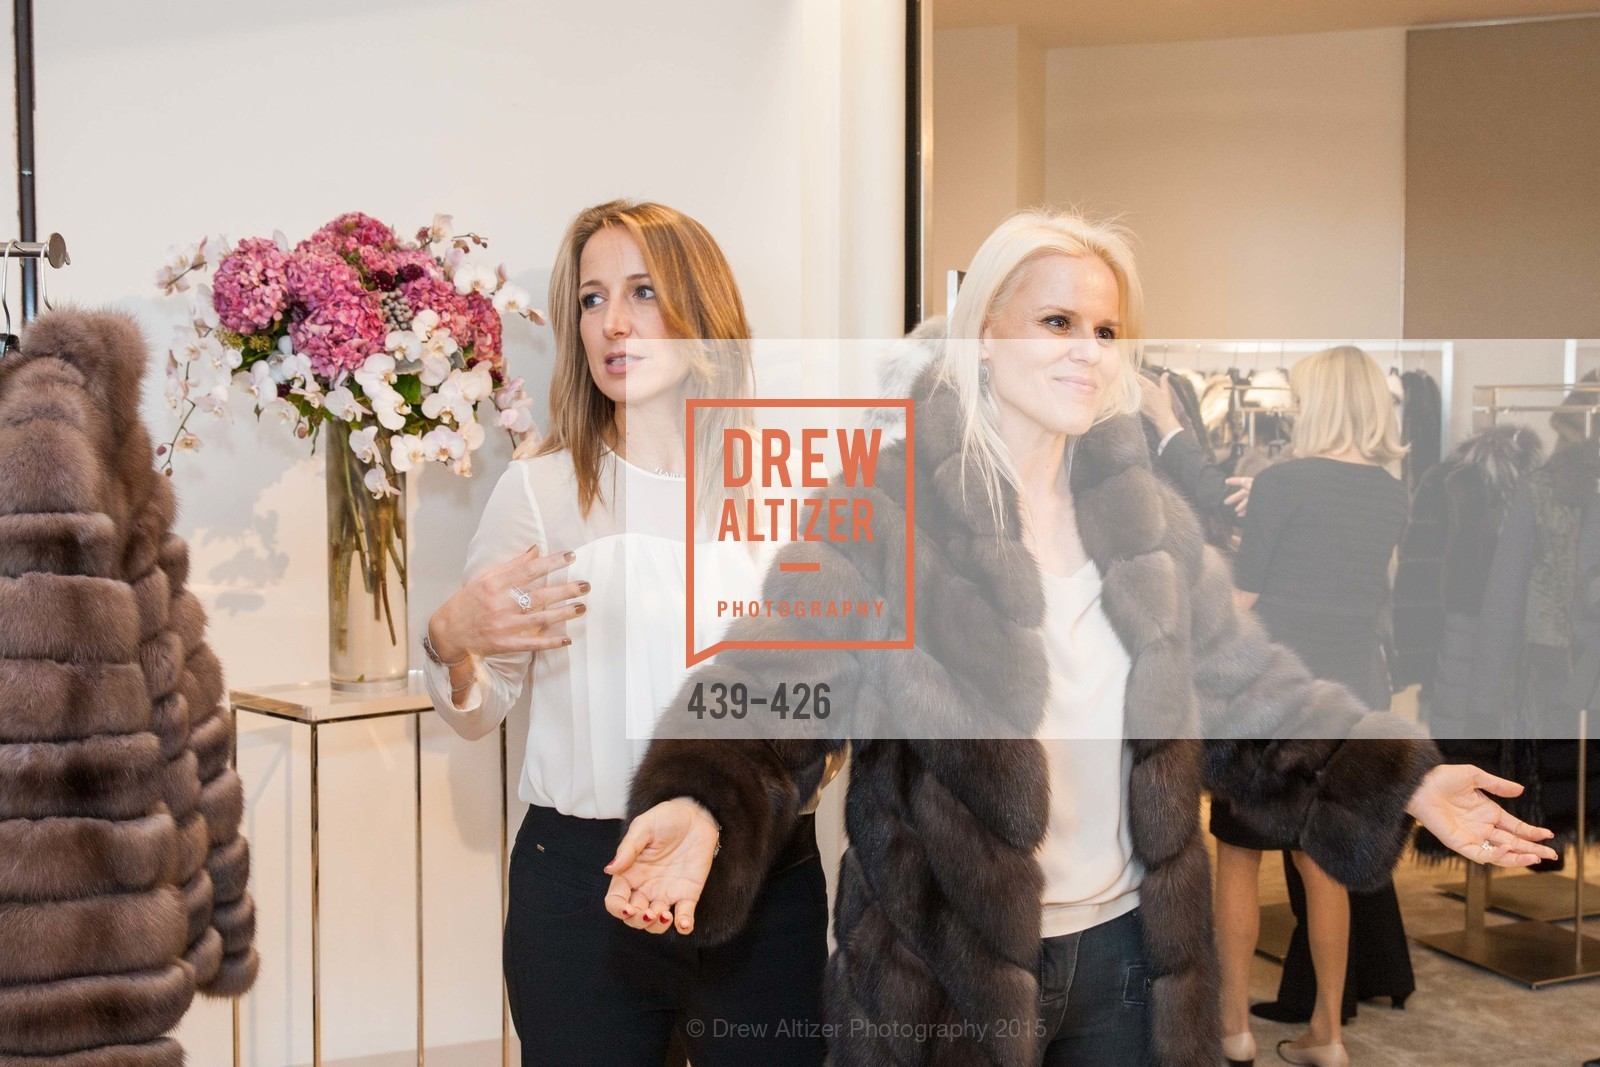 Ilaria Fabbri, Katja O'Brien, Rindi at Saks Fur Salon, Saks Fifth Avenue, Fur Salon, October 29th, 2015,Drew Altizer, Drew Altizer Photography, full-service event agency, private events, San Francisco photographer, photographer California